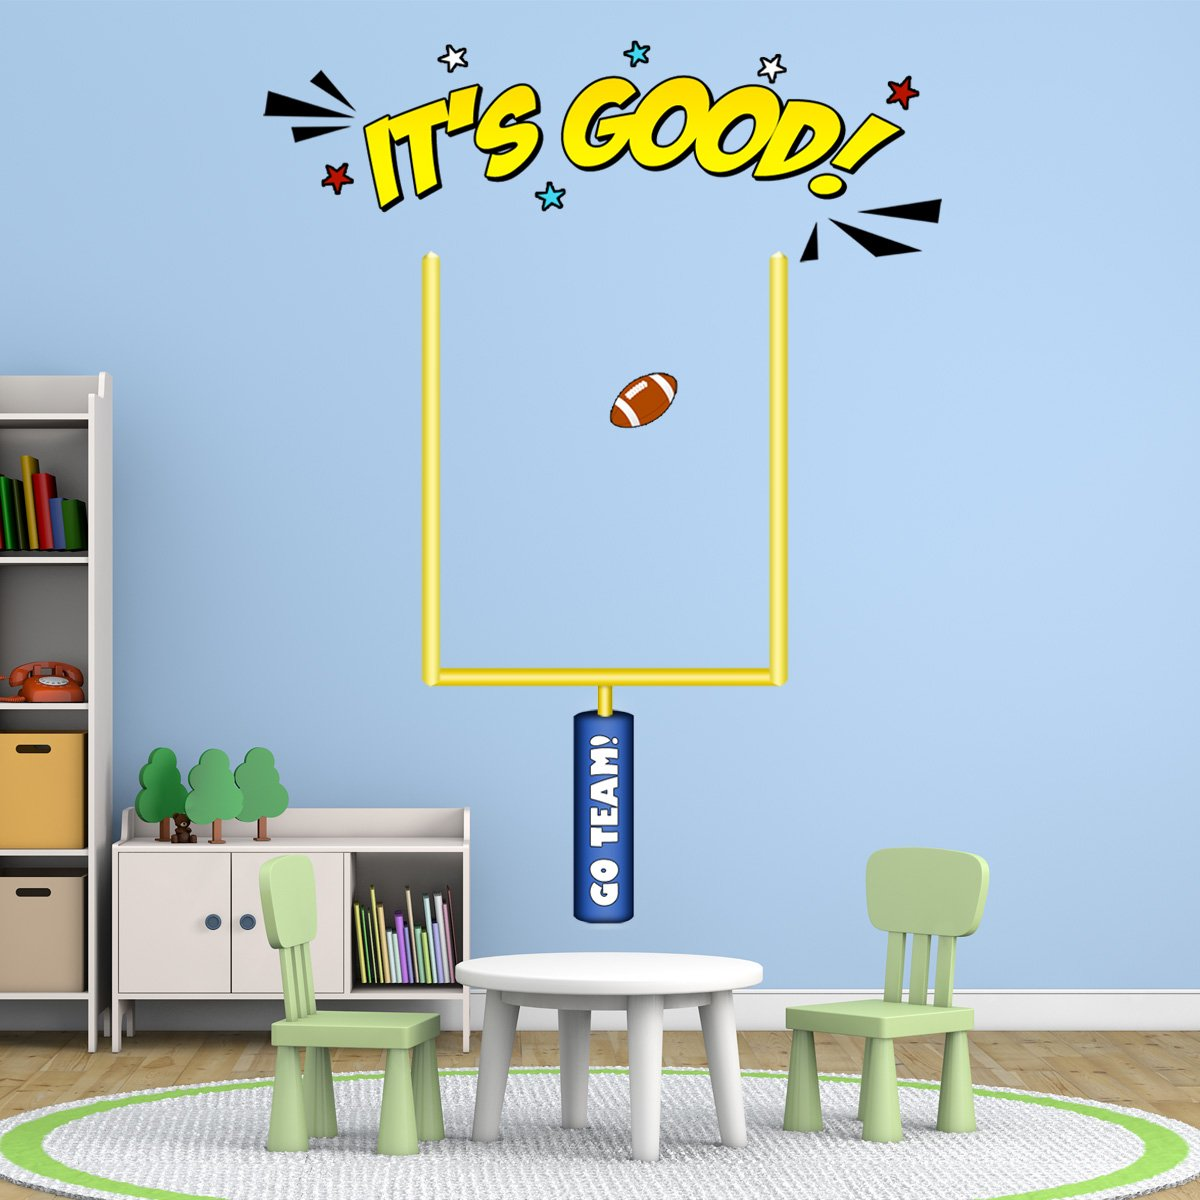 VWAQ Field Goal Post Decal - Football Wall Decals for Boys Room Decor -  PAS28